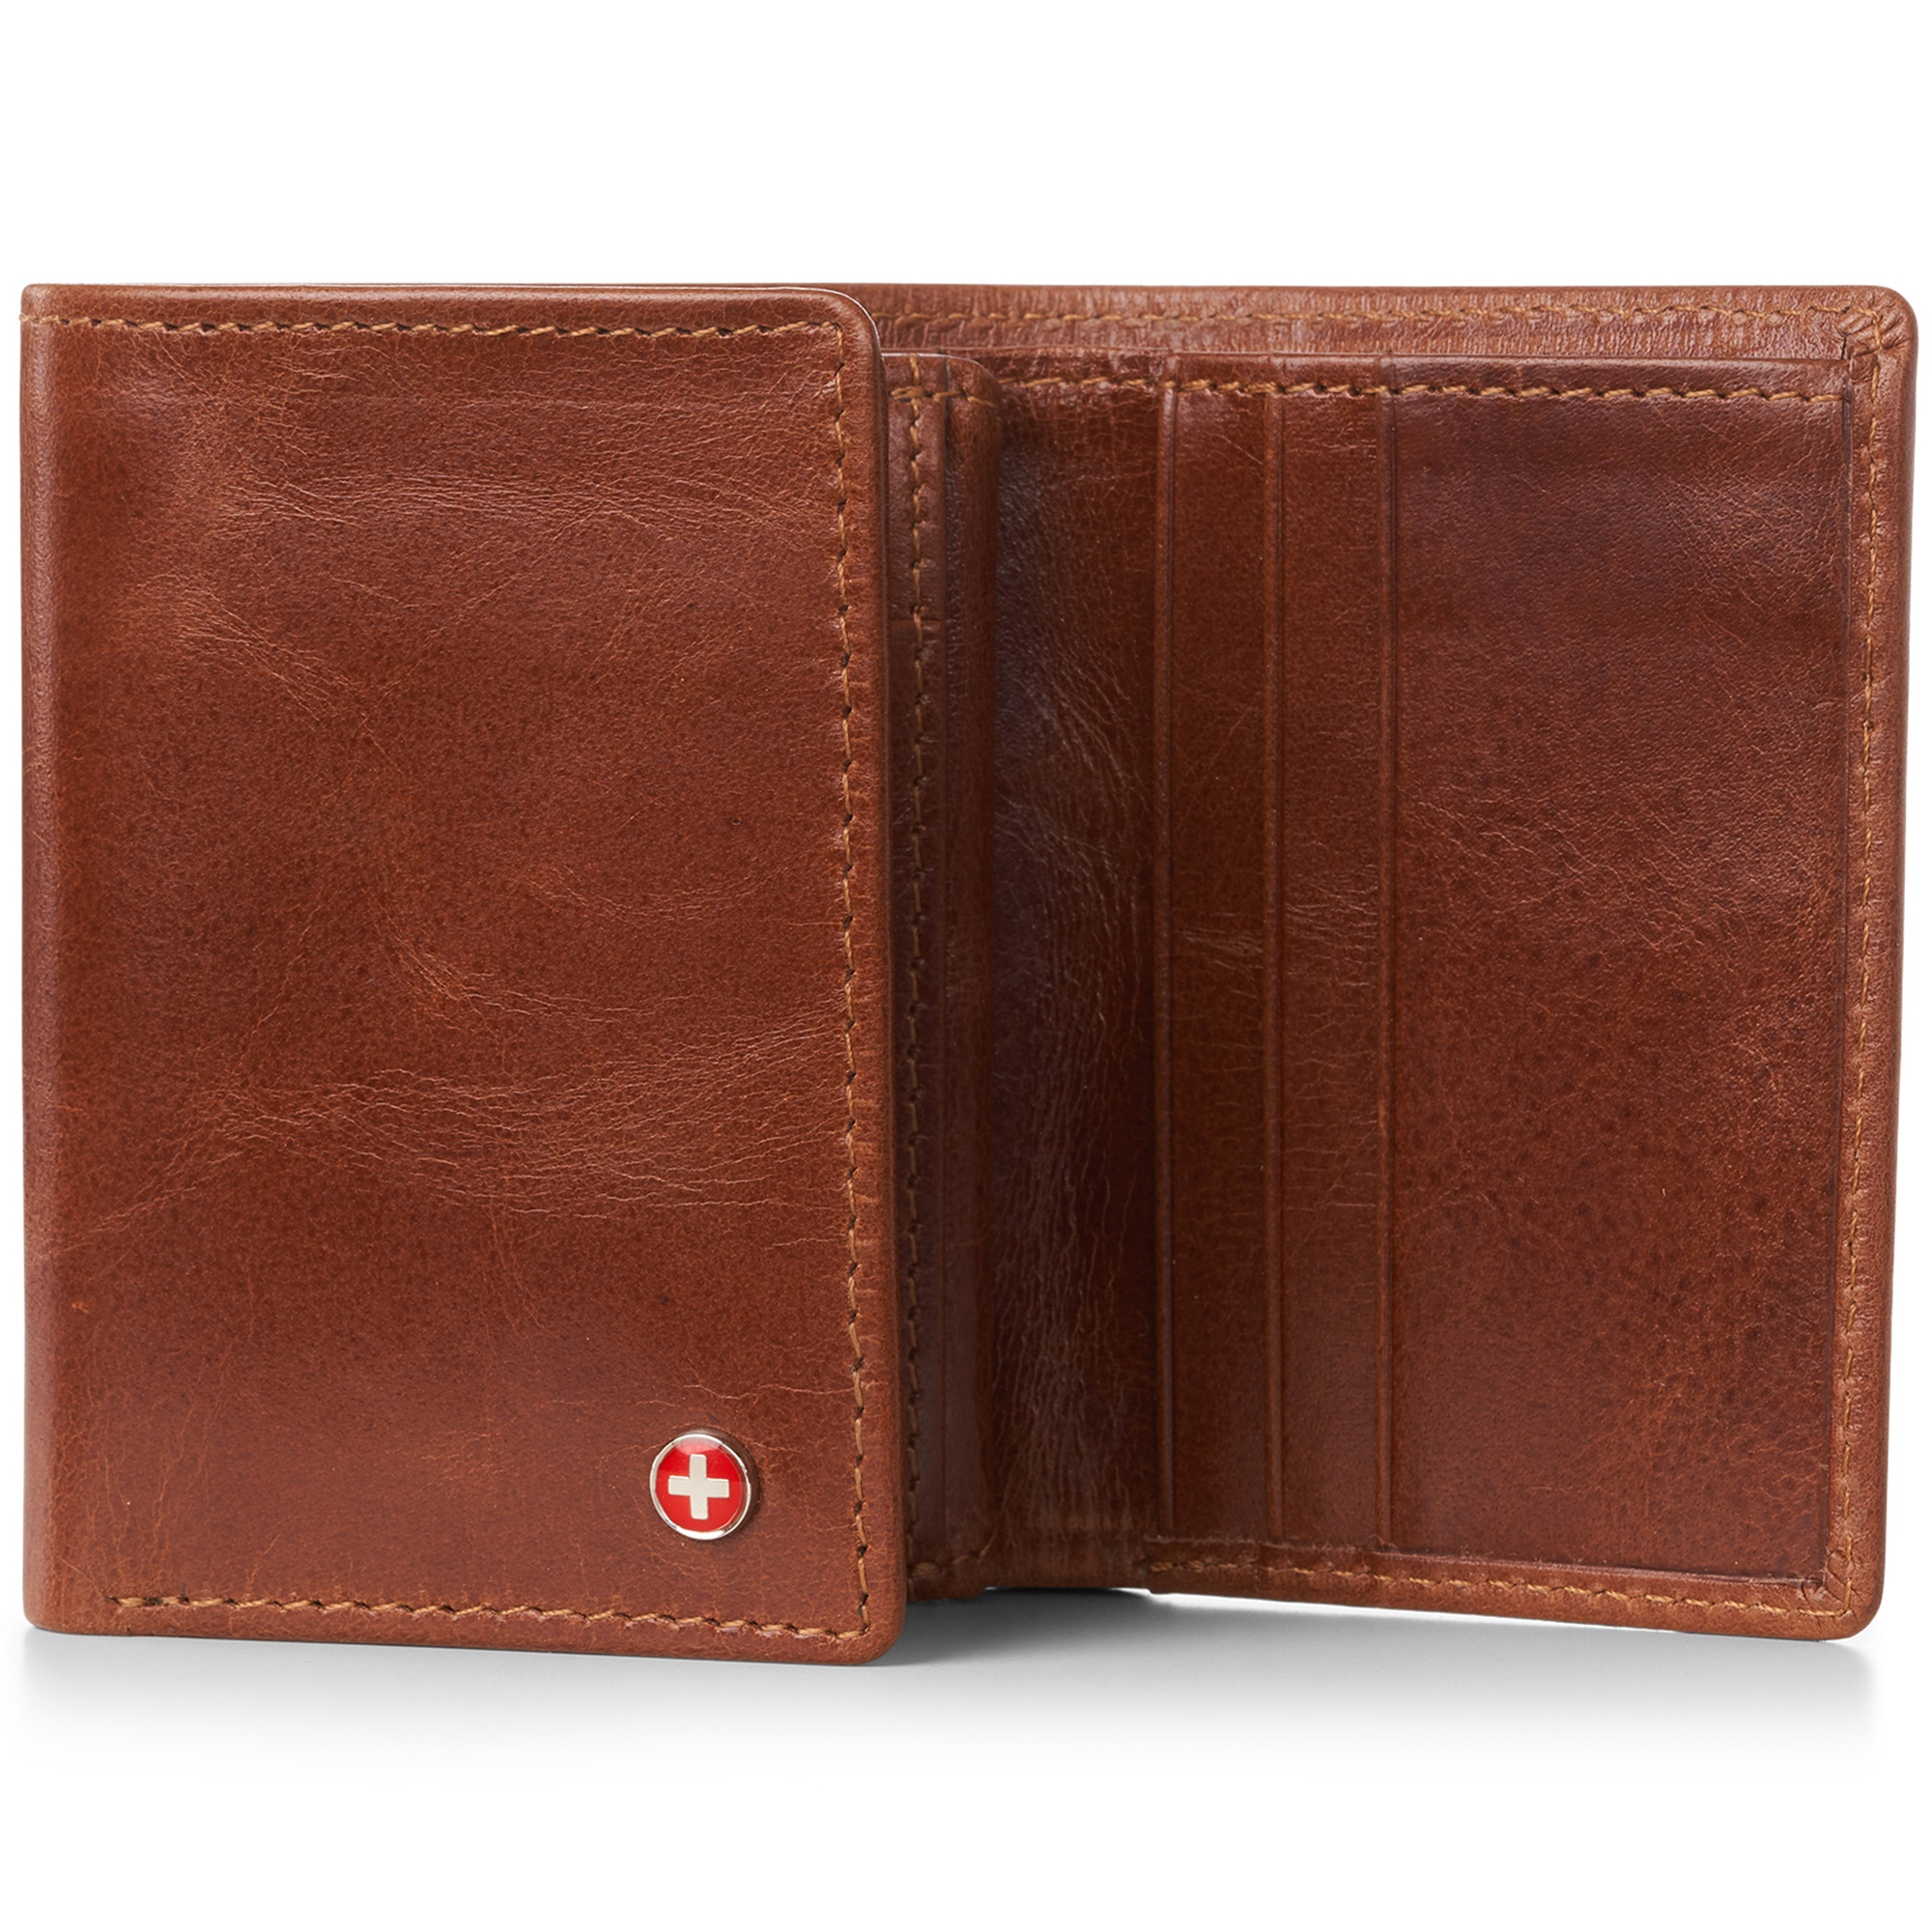 Alpine-Swiss-RFID-Mens-Wallet-Deluxe-Capacity-Trifold-With-Divided-Bill-Section thumbnail 26